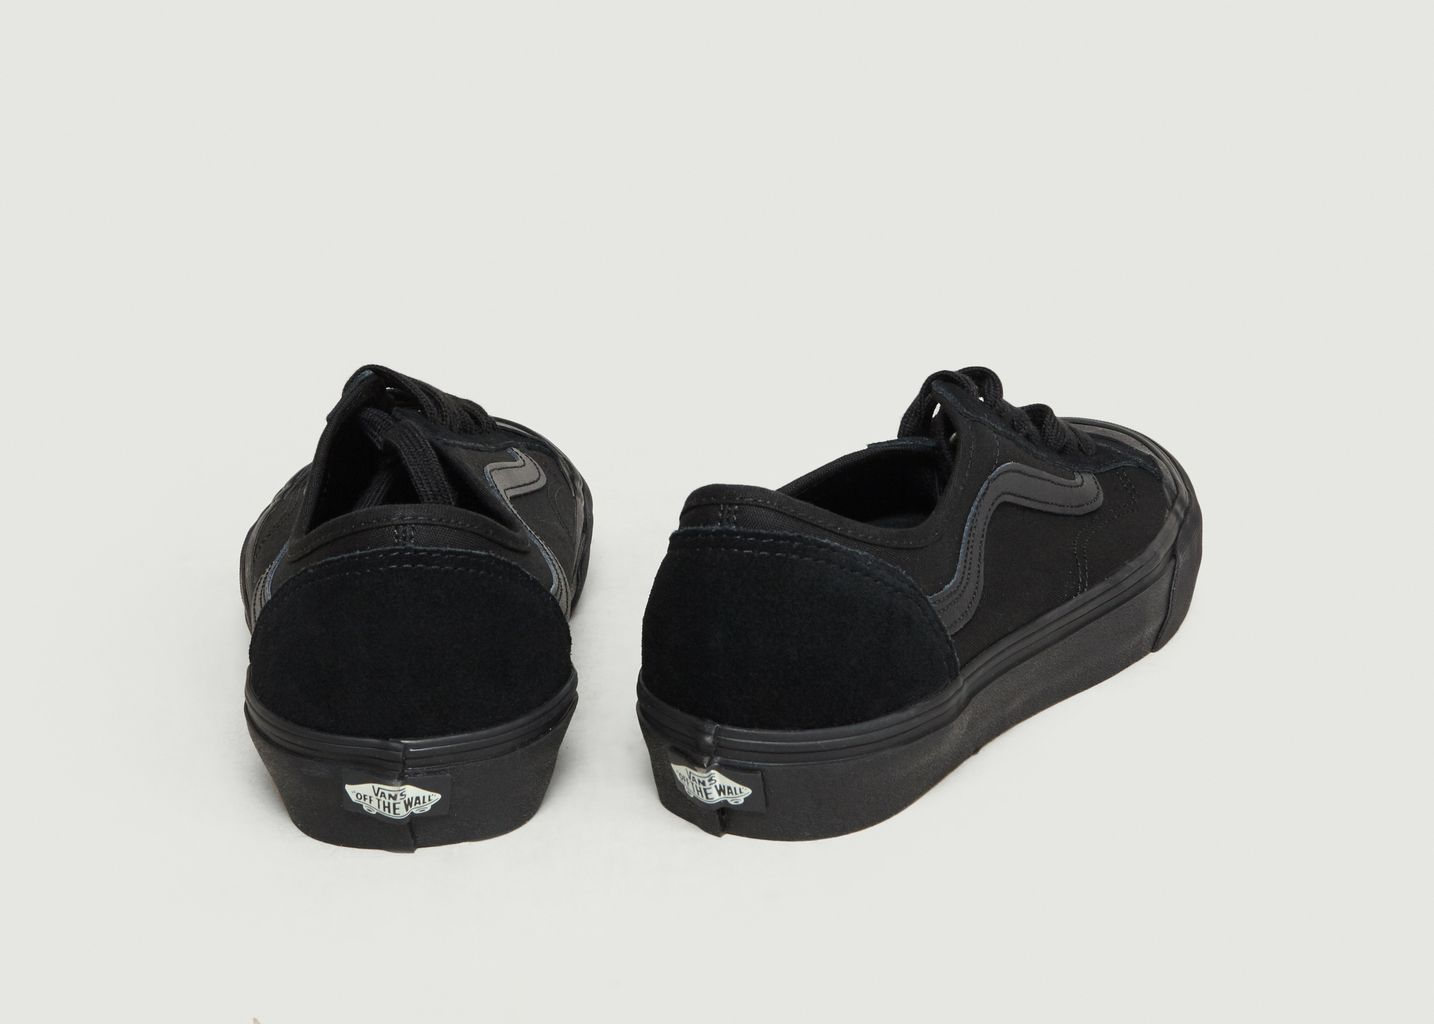 3b9c61786b Decon SF Suede Skate Shoes Black Vans